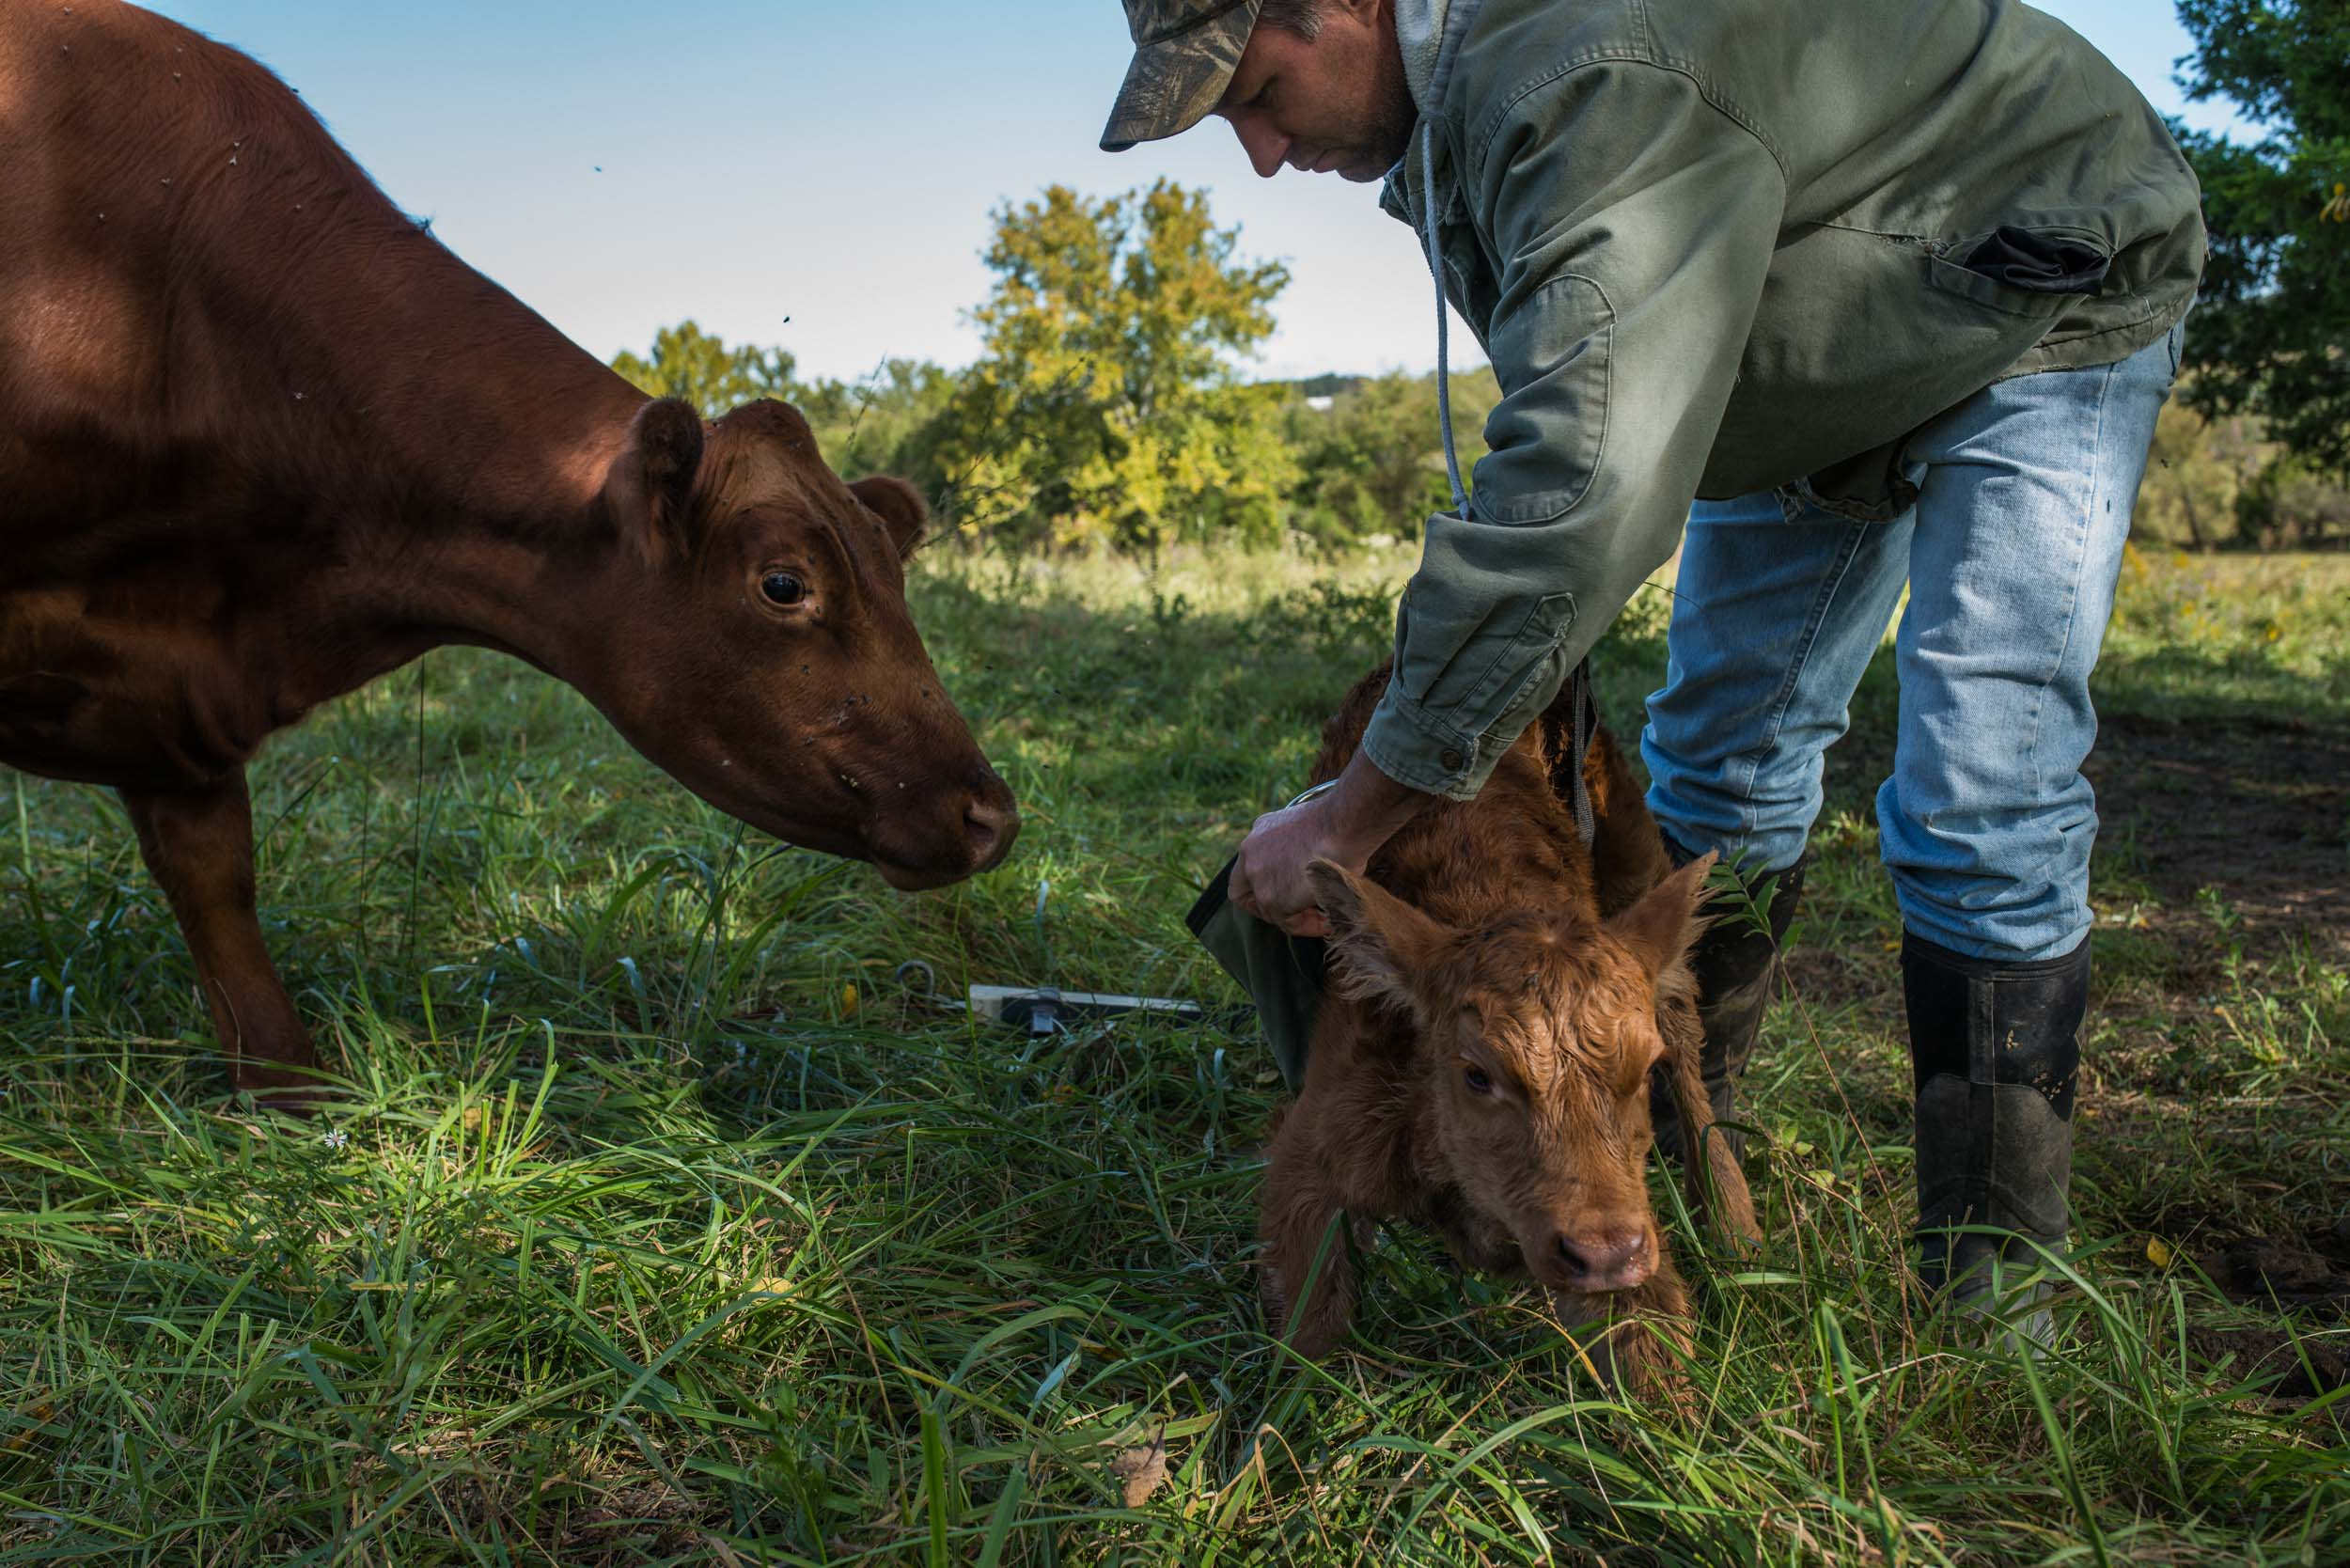 Nathan weighs and tags a heifer that was born an hour before. Cattle on the Mast farm are artificially inseminated and timed to give birth in early autumn.